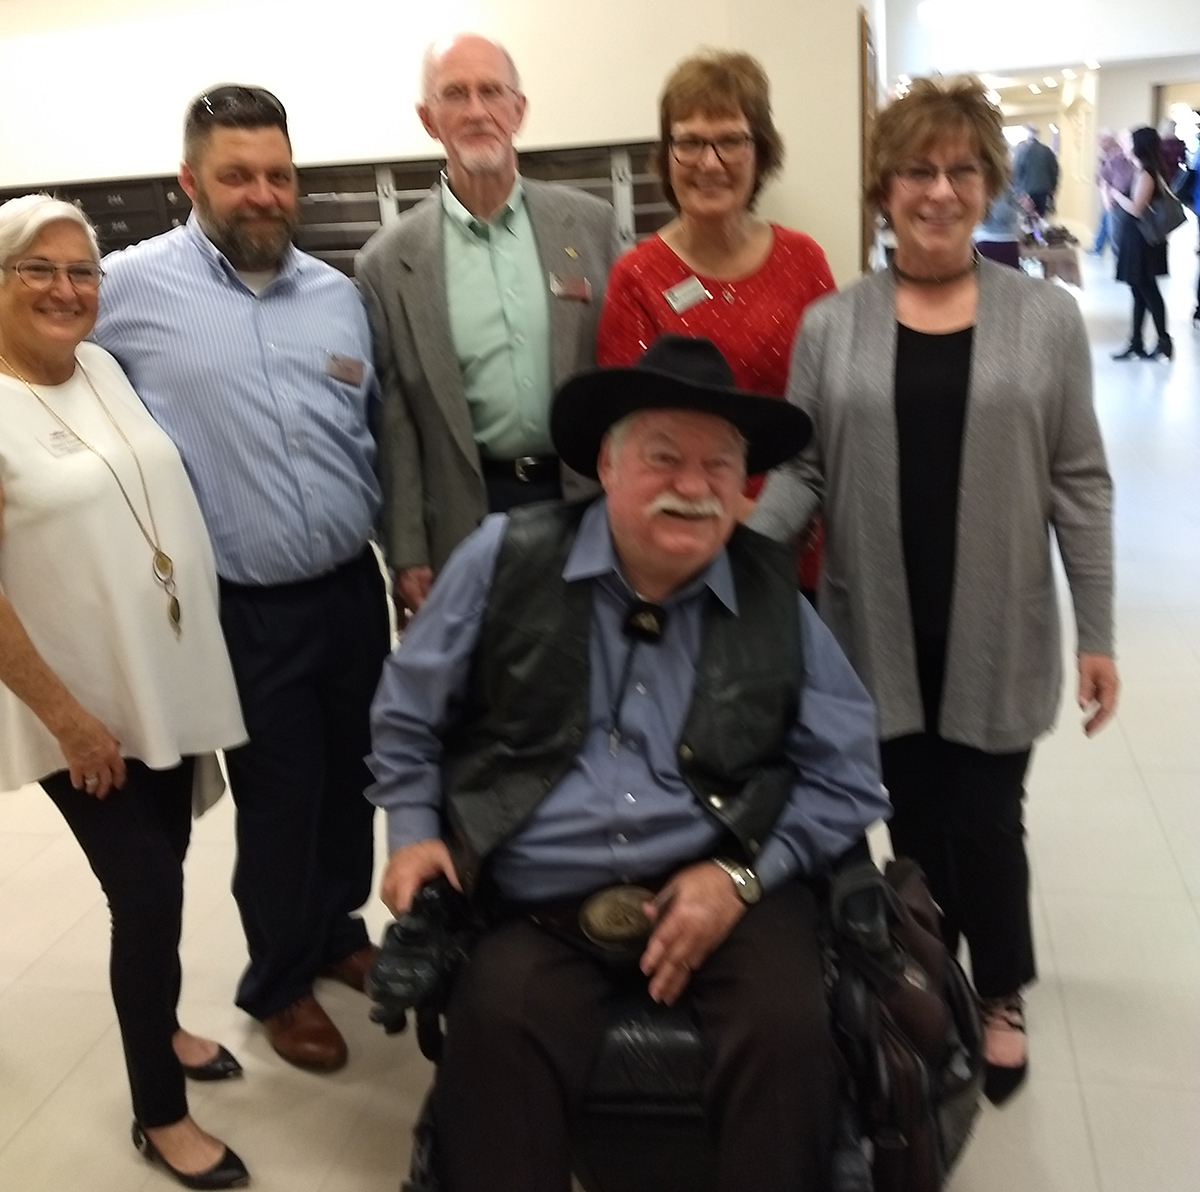 Surprise Vice Mayor Roland Winters and Surprise Councilwoman Nancy Hayden at Fellowship Square with Jay Trottier, Facilities Manager, John Norris, Executive Vice President, Kathy Loscheider, Excutive Director and Lori Wilson, Marketing Director